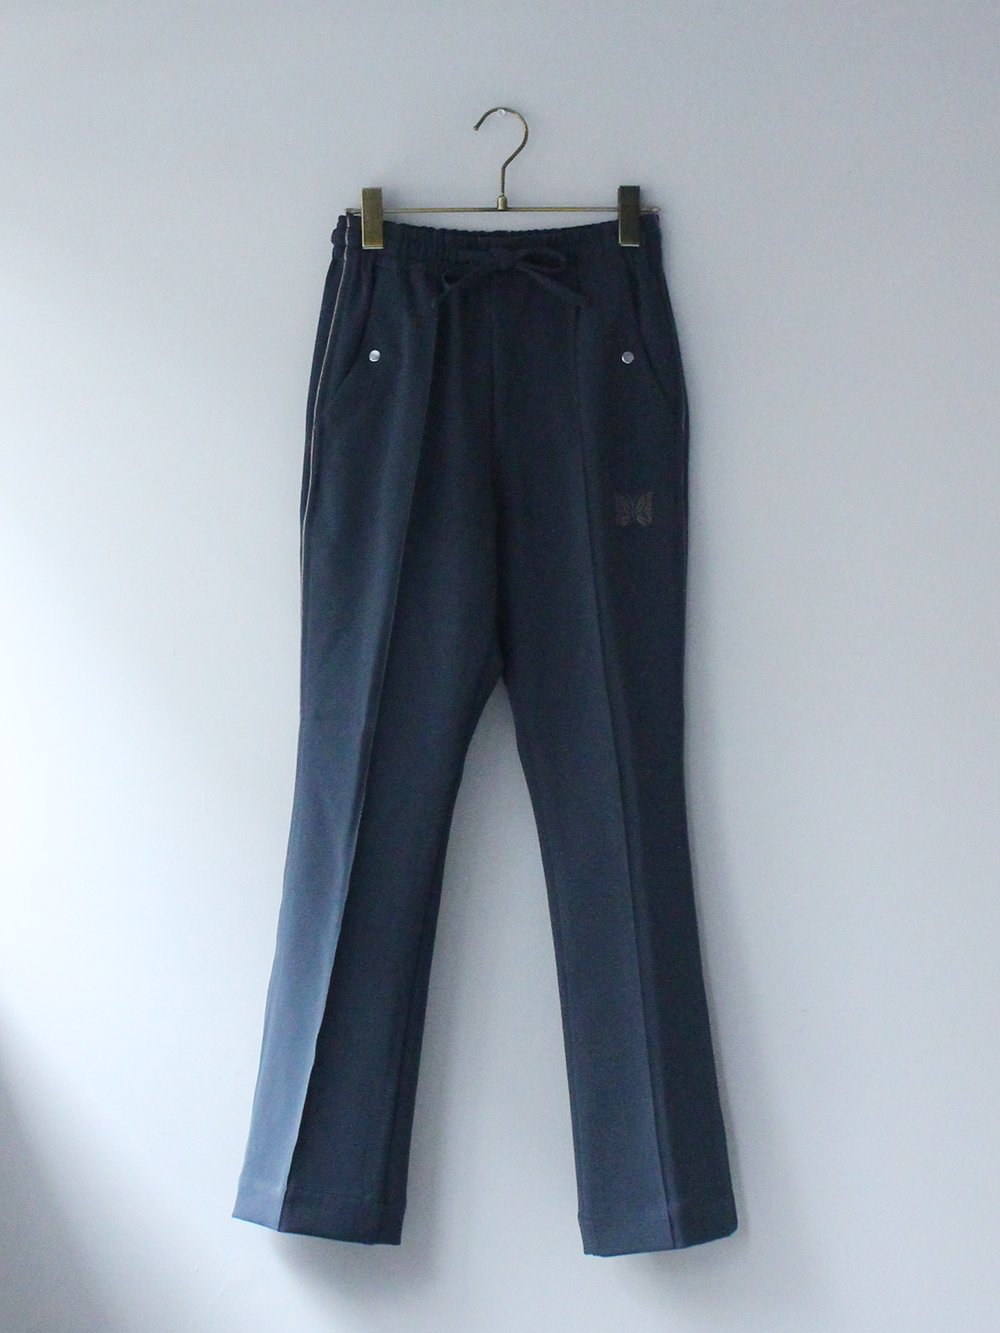 """<img class='new_mark_img1' src='https://img.shop-pro.jp/img/new/icons8.gif' style='border:none;display:inline;margin:0px;padding:0px;width:auto;' />Needles """" Piping Cowboy Pant - Pe/Pu Double Cloth (green)"""""""